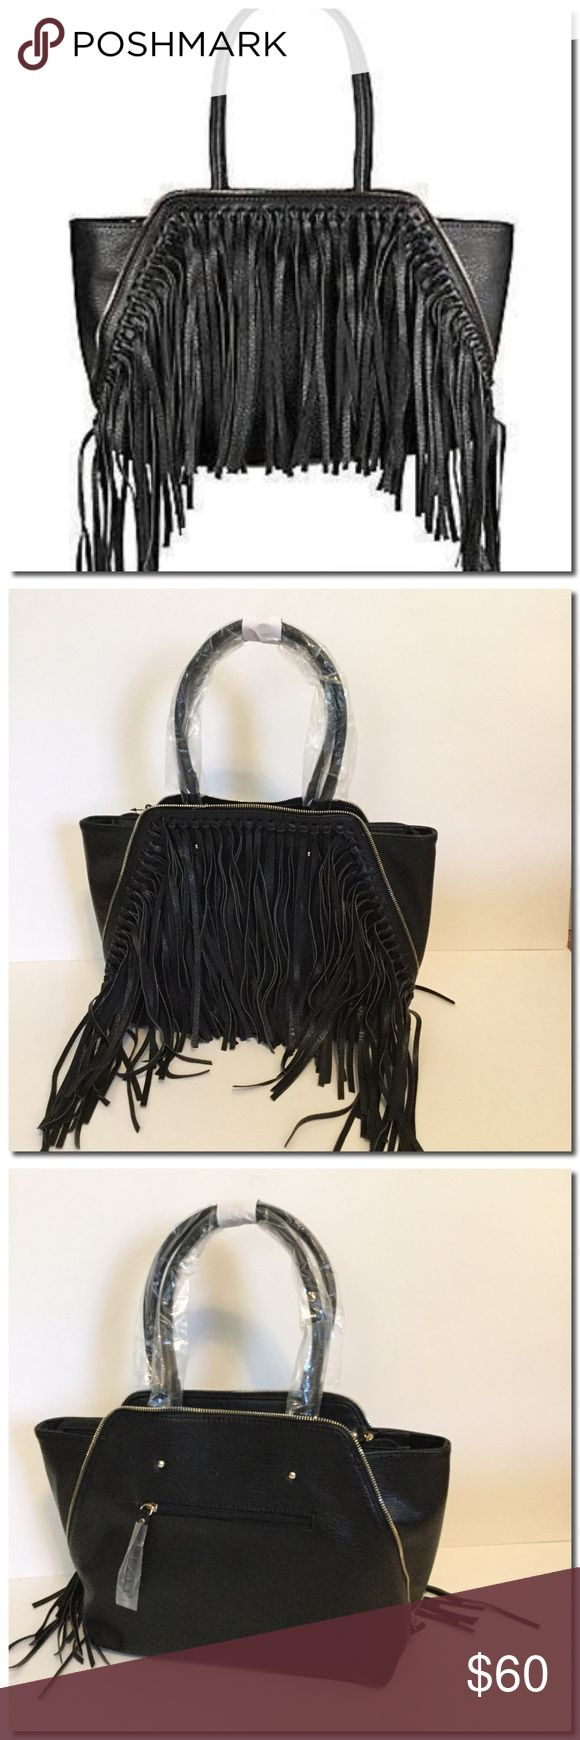 """🎒FL🅰️SH S🅰️LE 🎒 Fringed Faux Leather Tote Fringed Faux Leather Tote-Roomy faux leather tote with boho-chic fringe Double top handles, 8"""" drop Top zip closure Front fringe and zip detail Back zip pocket Two inside open pockets One inside zip pocket Fabric lining 18""""W X 12""""H X 5.5""""D Faux leather Imported Bags Totes"""